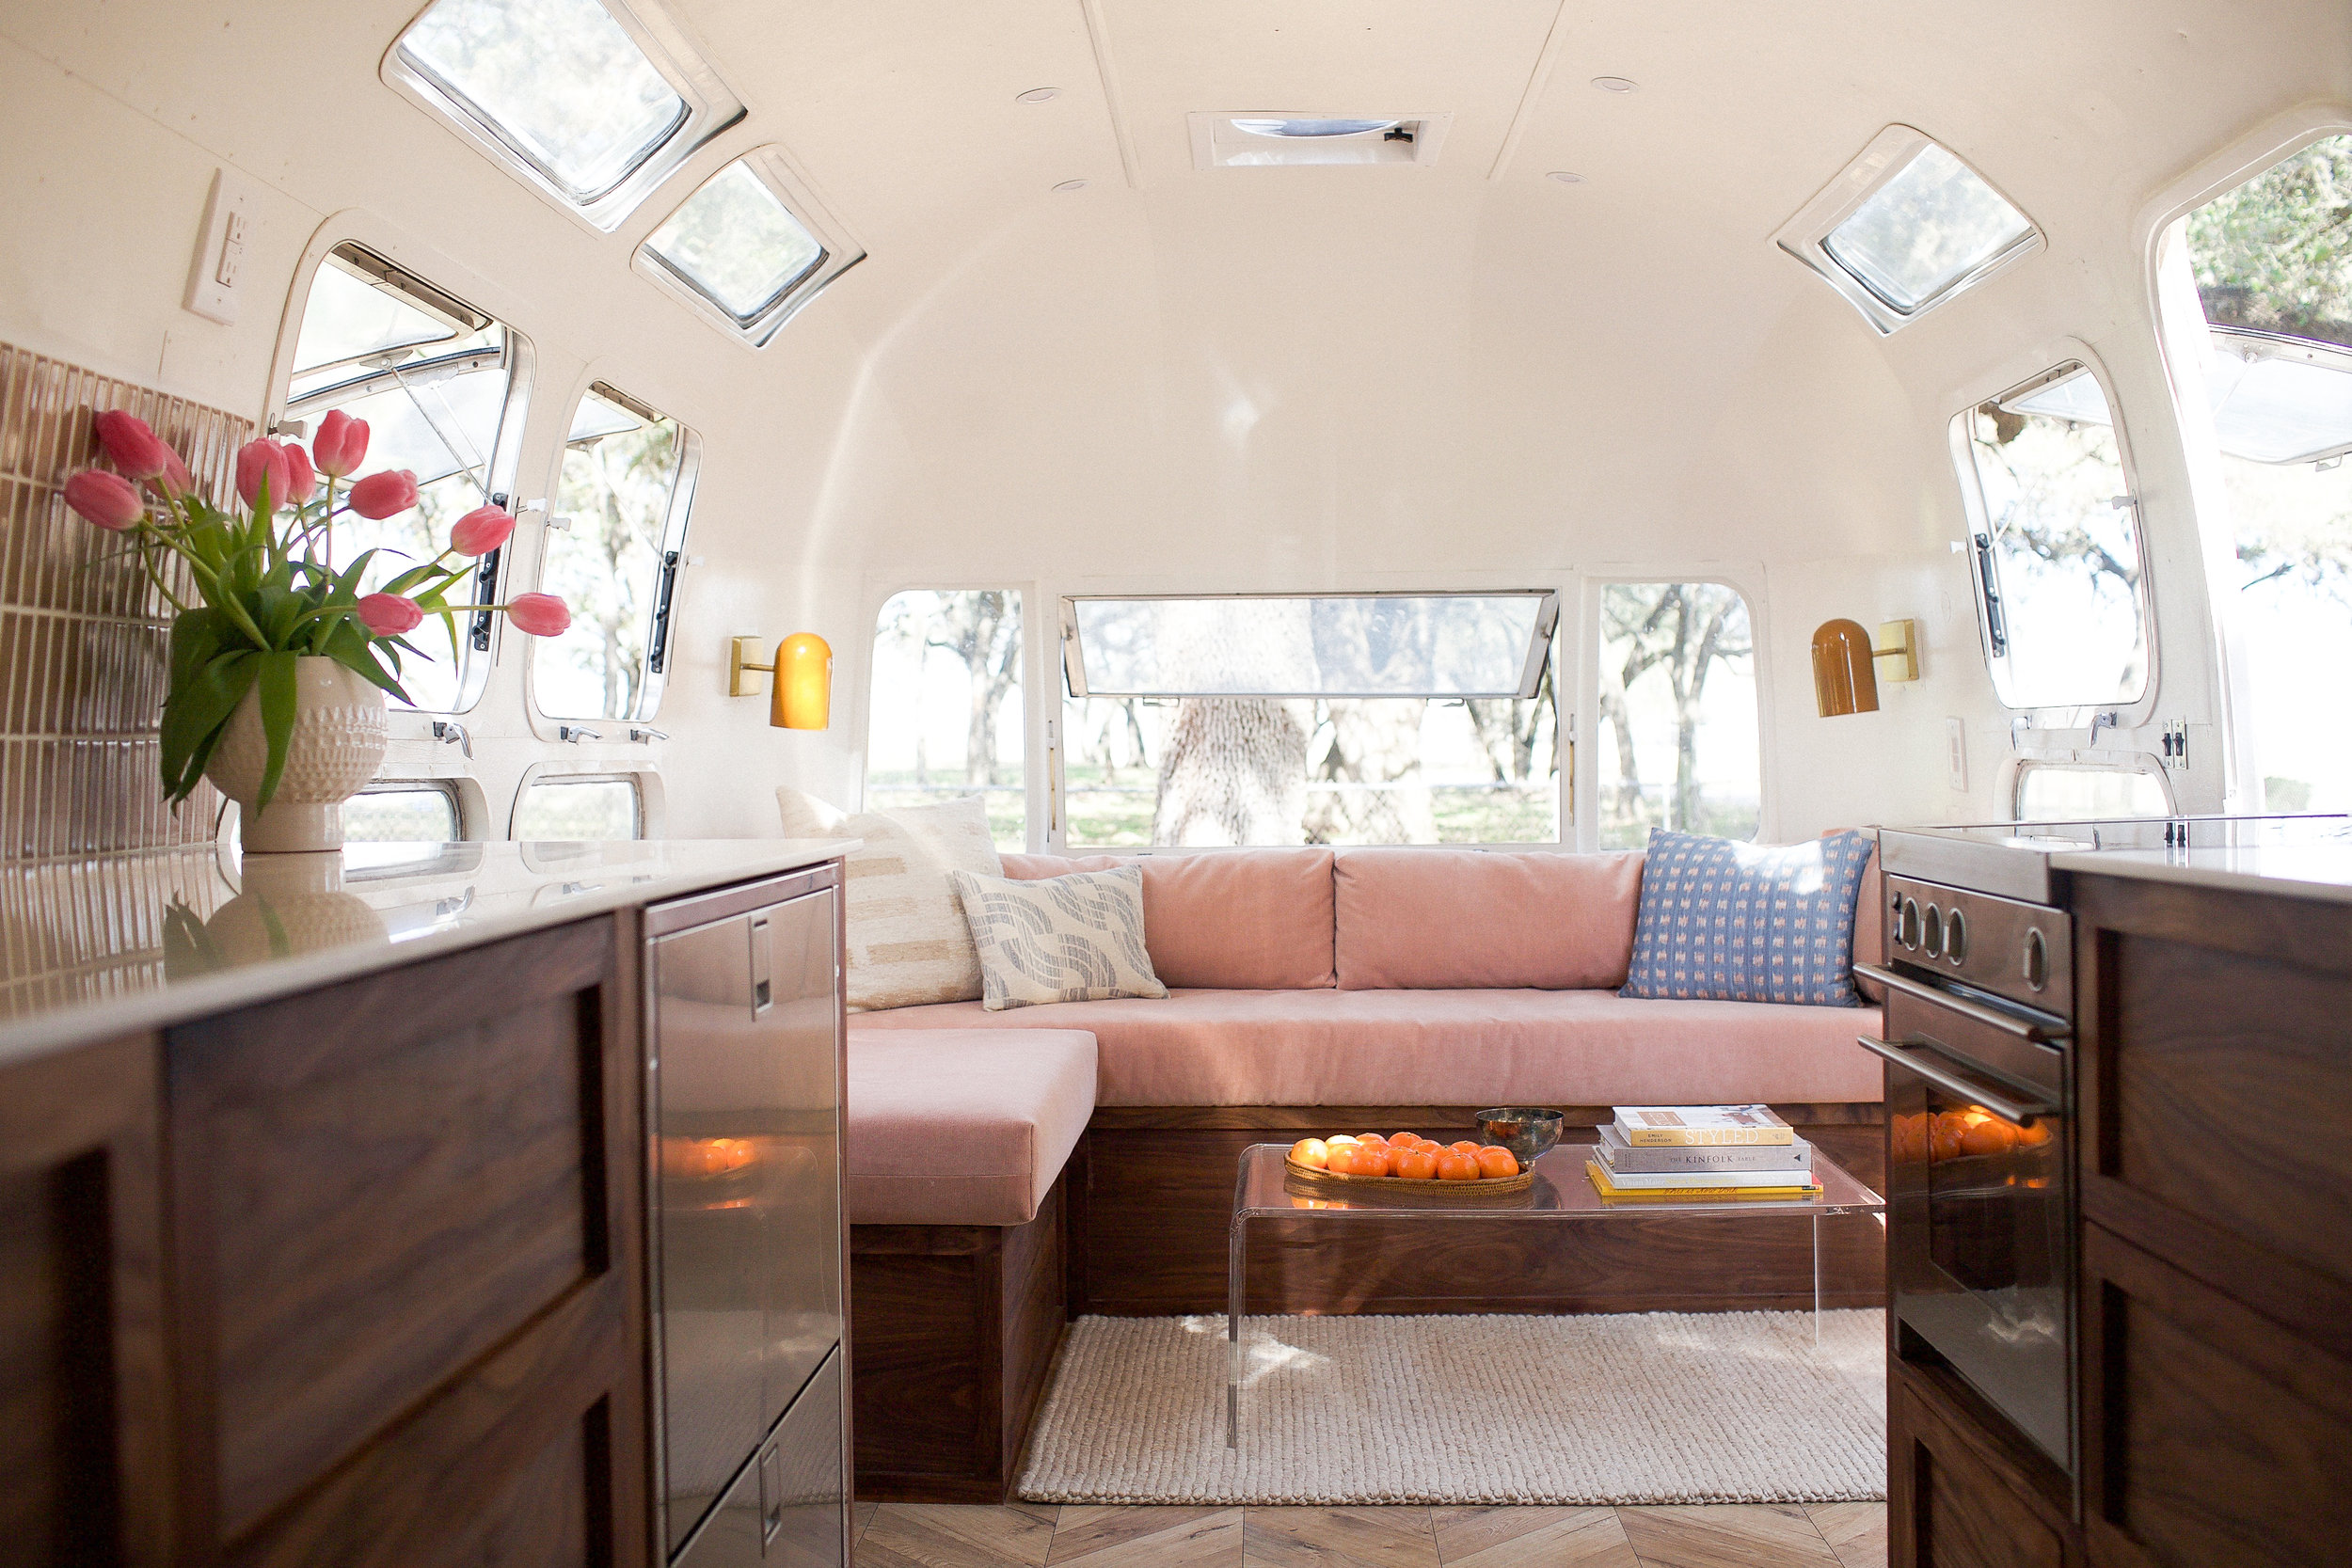 A beautiful airstream with soft pink furnishings and dark wood kitchen